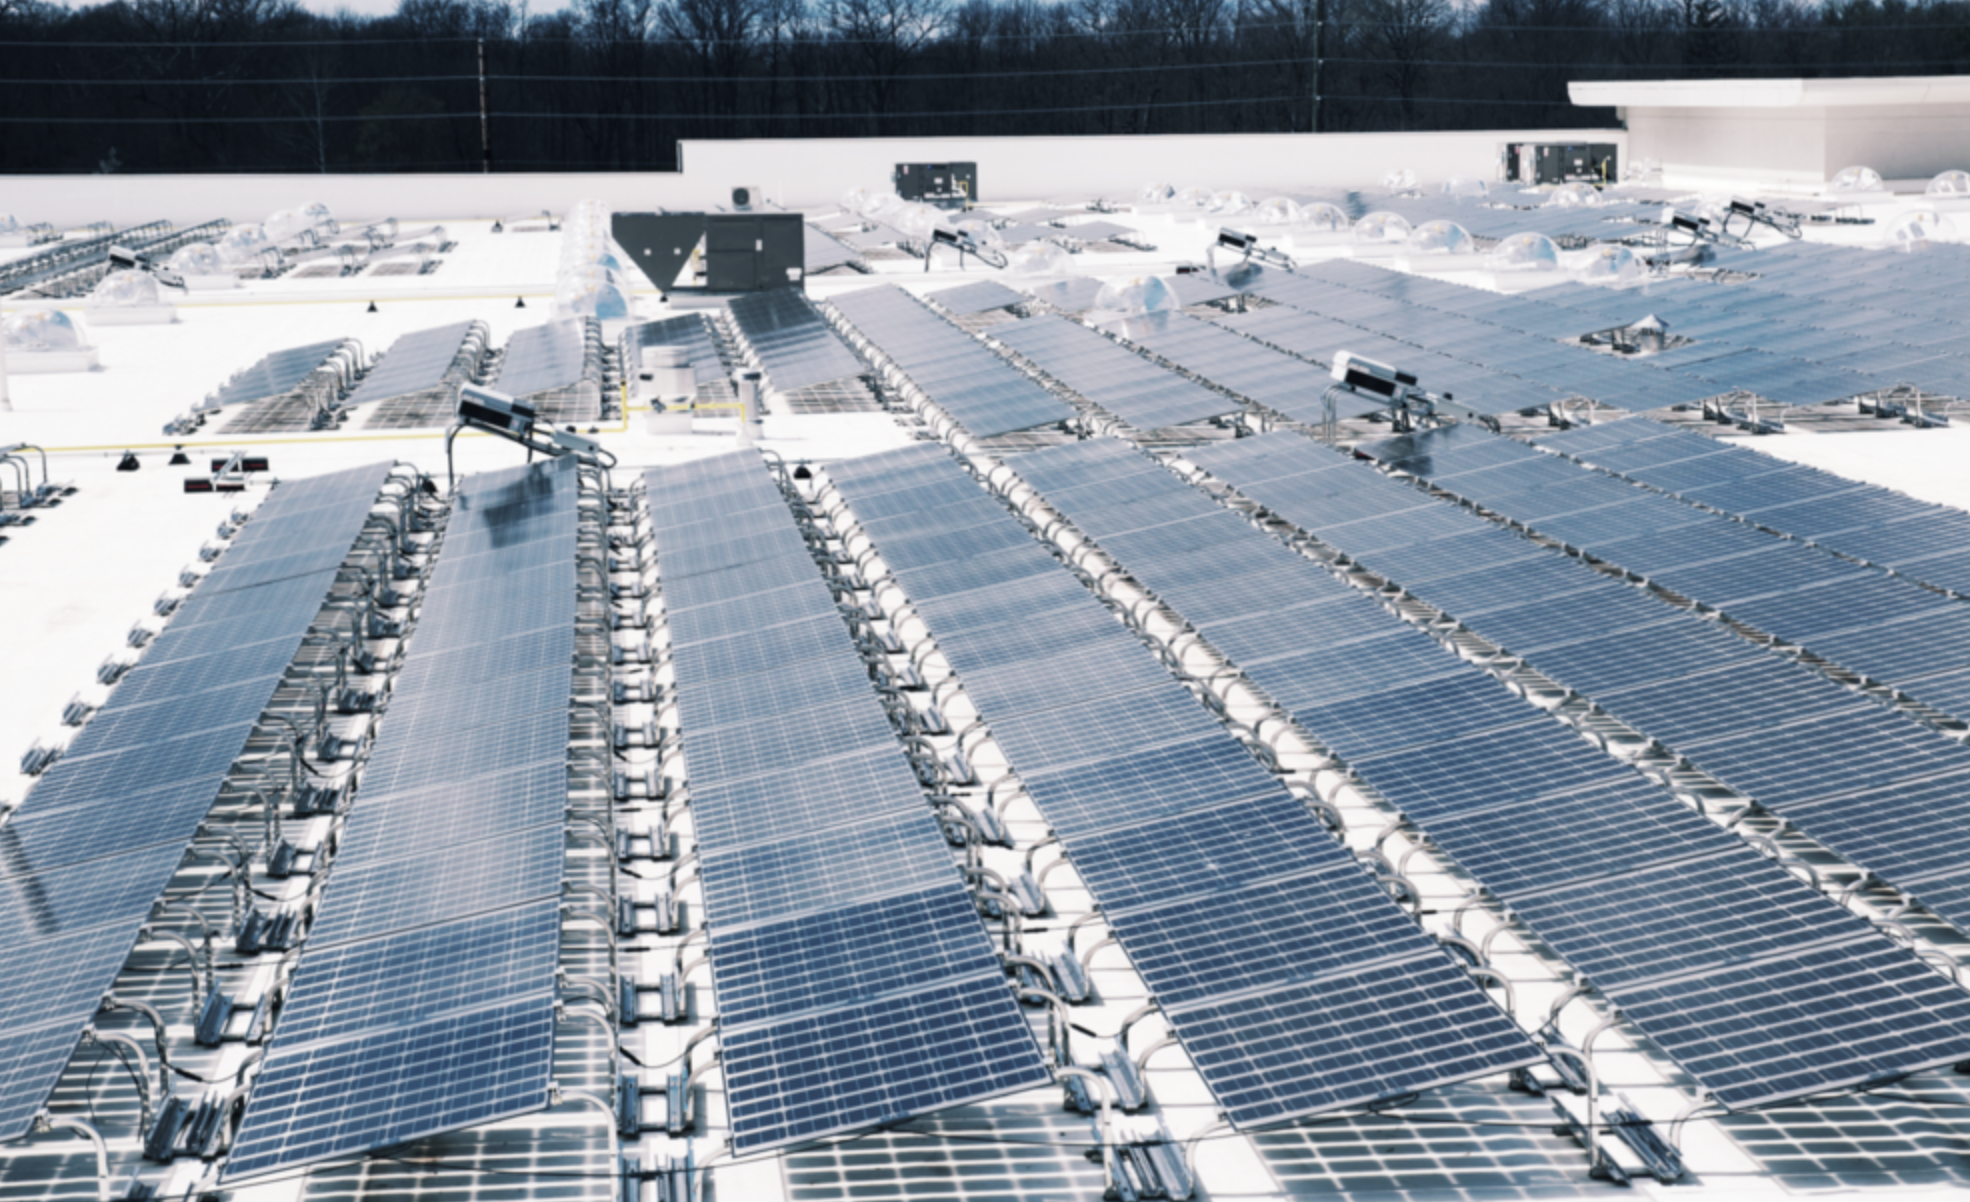 Demand Charge Cost Reduction through an Installed Genie Solar Energy System.